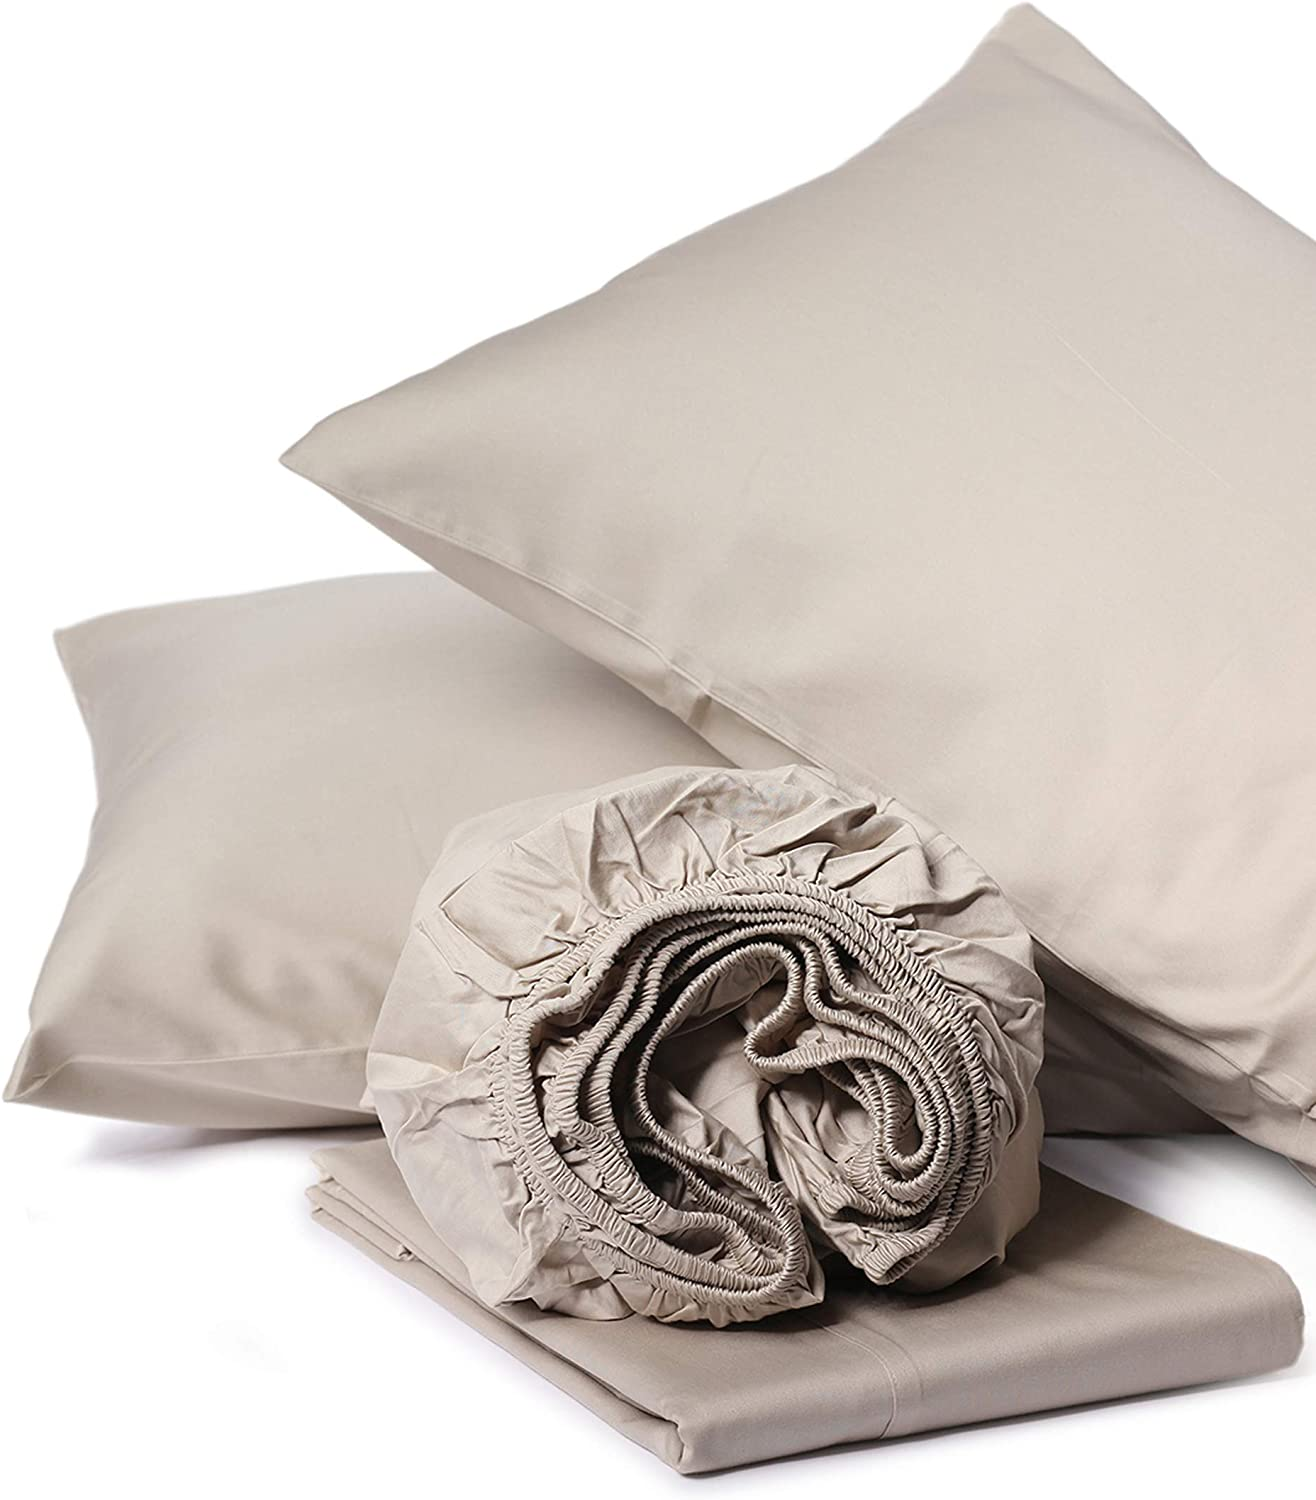 100% Organic Cotton King Sand Sheet Sateen Piece 3 Weave Max 60% OFF Max 78% OFF 4 Set